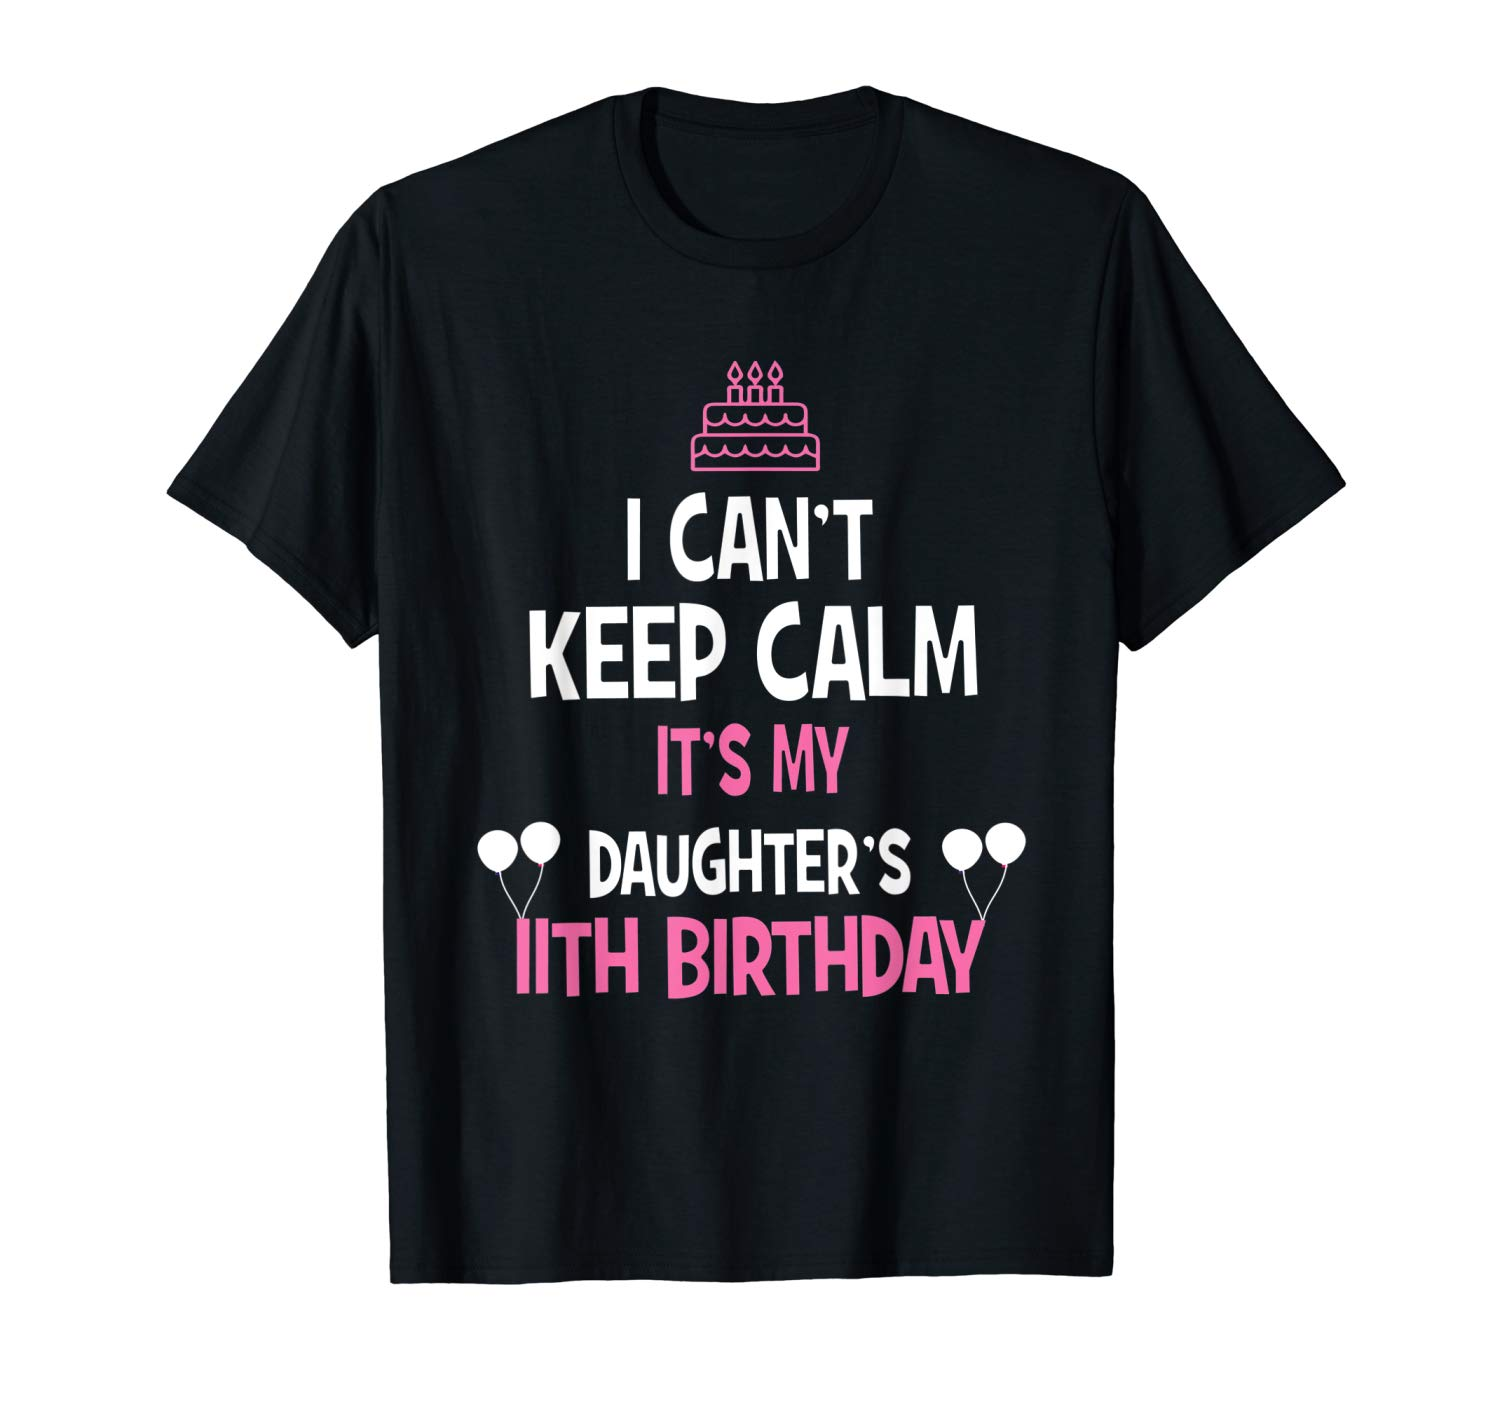 Can T Keep Calm T S My Daughter S 11th Birthday Shirts